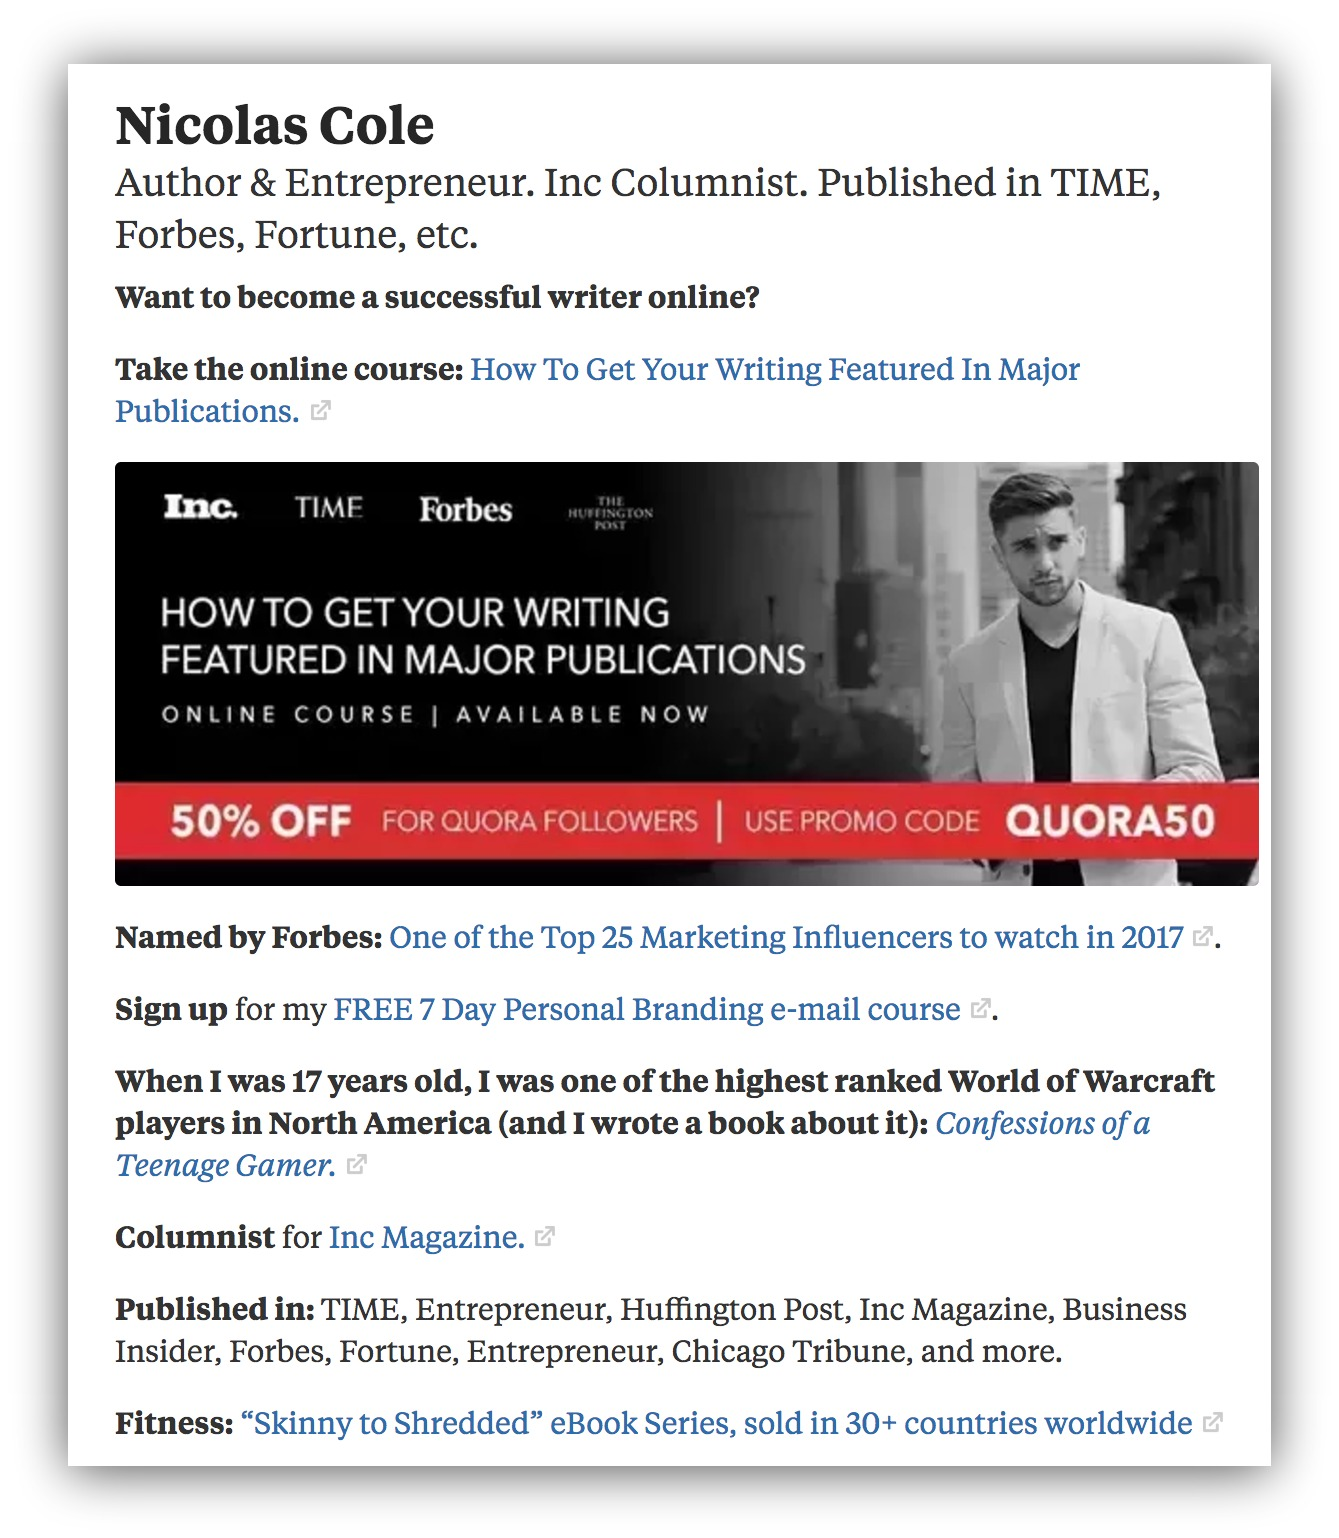 Screenshot of Nicholas Cole